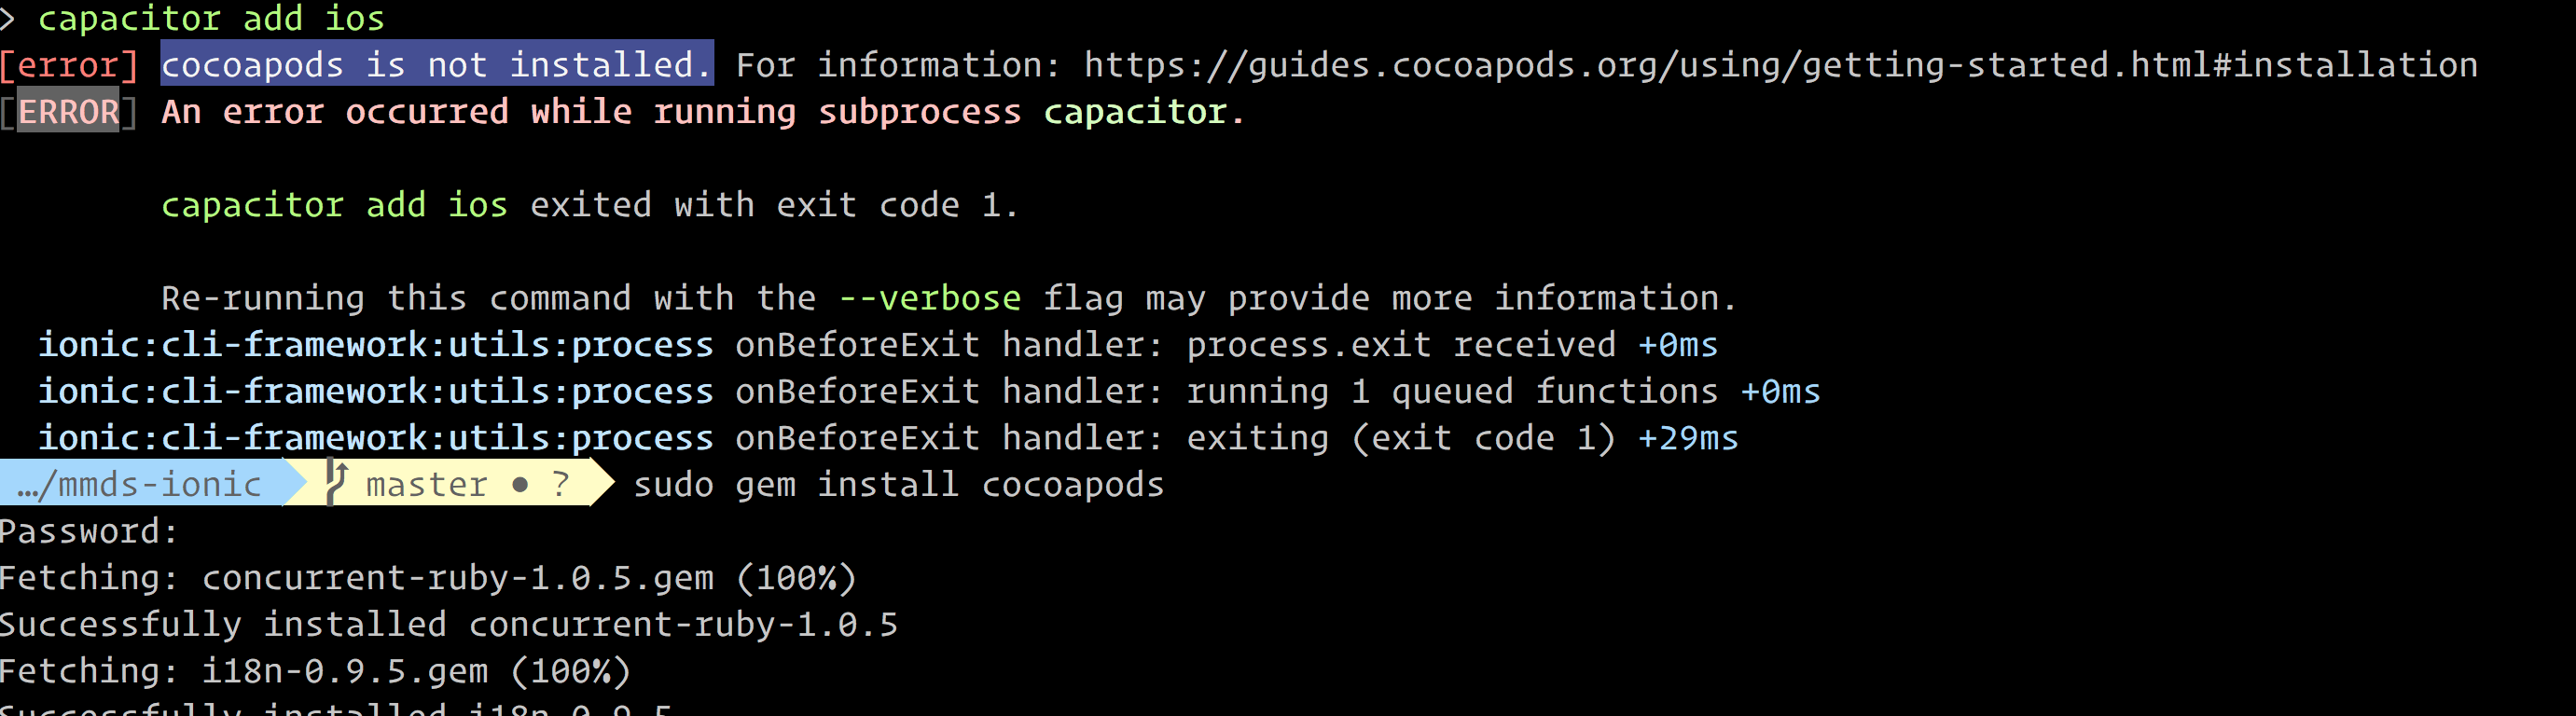 ionic capacitor add ios` command fails with